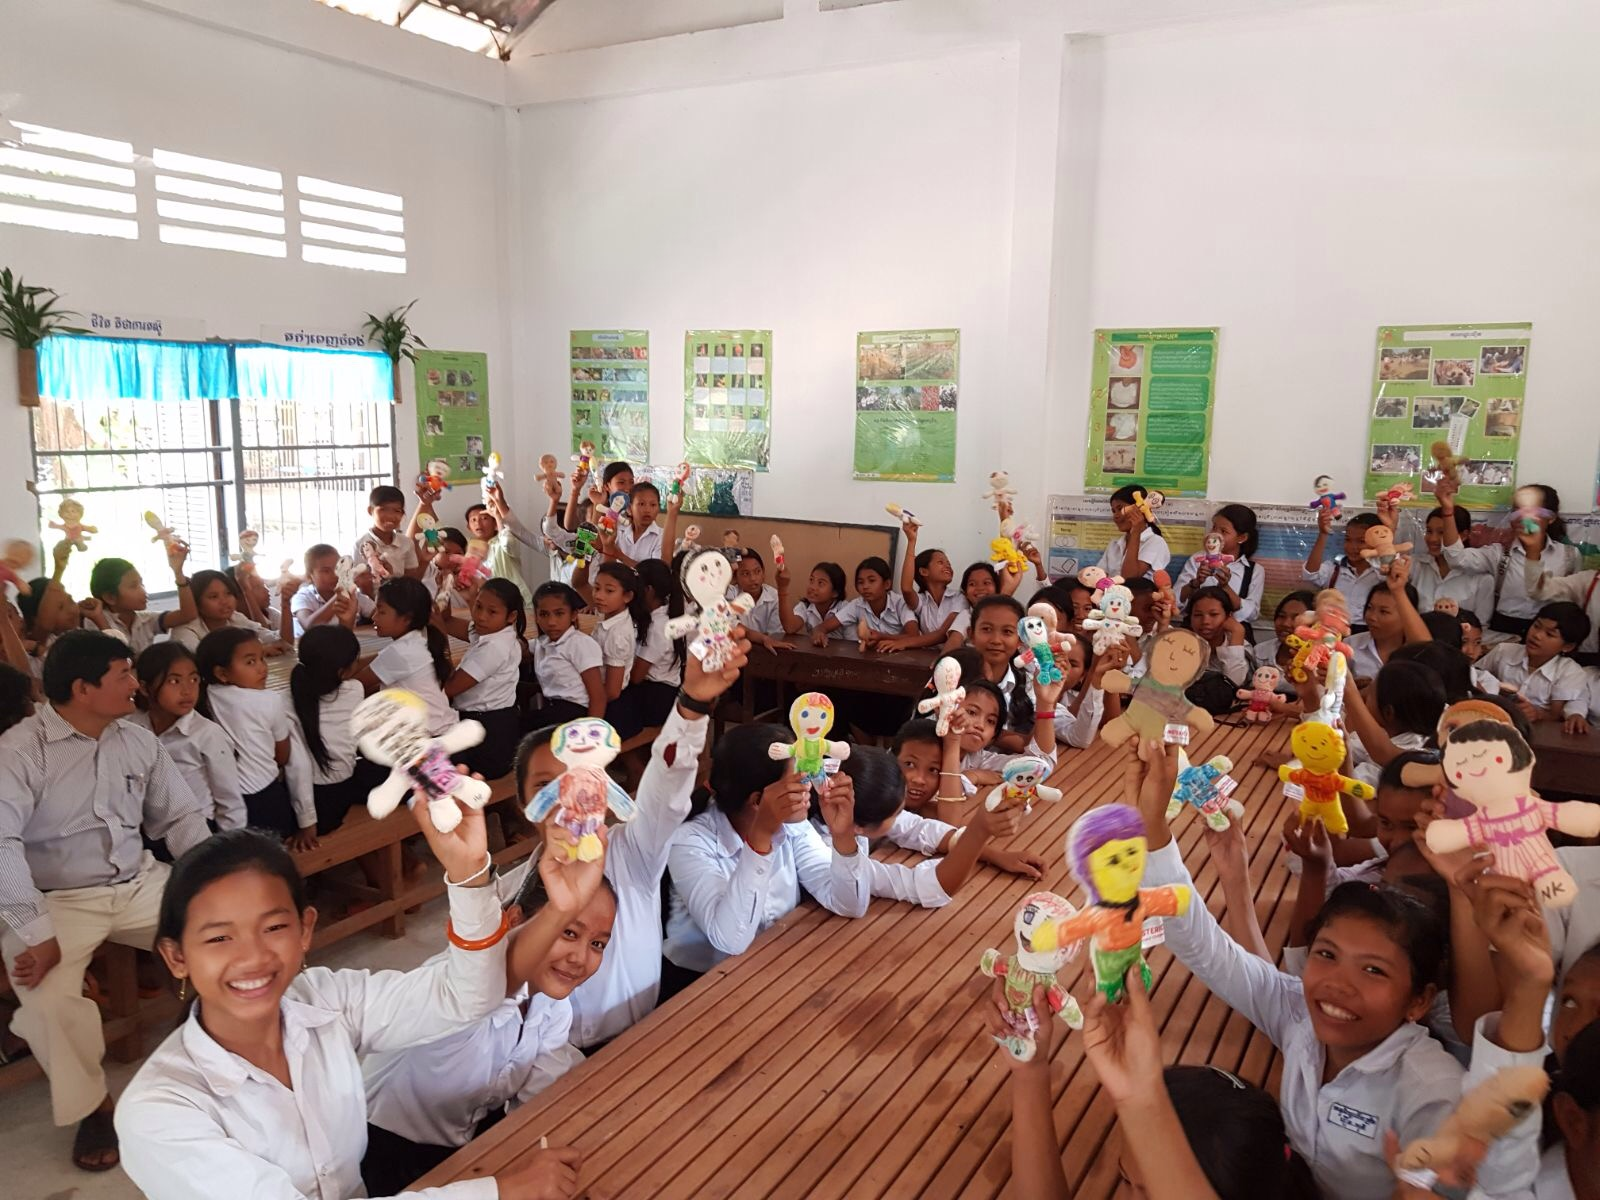 This week, our friend, Graciela from Italy traveled to Cambodia and gave the dolls to children in SRET school as the holiday gifts. (the school supported by the FWE-Cambodia project, the Siem Reap area).  Loos at all the smiles!  Check out the album to see more photos:https://www.msterio.org/events-2/  Thank you, Graciela for making it happen.